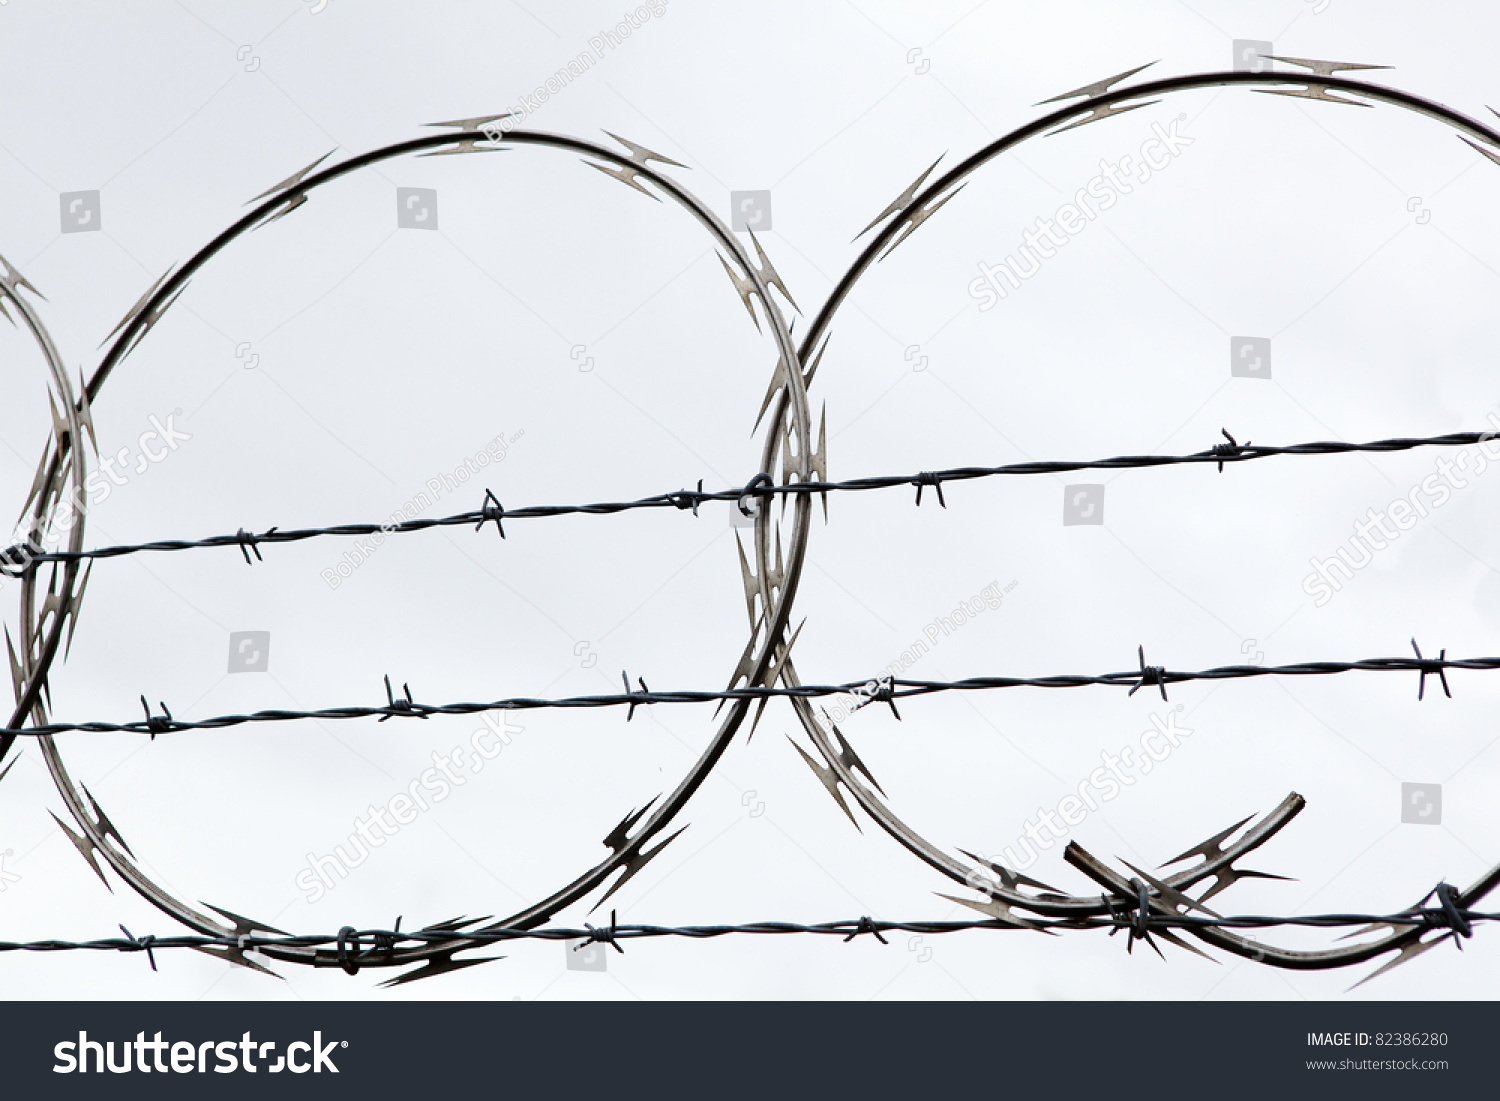 Nasty Looking Circular Barbed Wire On Stock Photo (Safe to Use ...